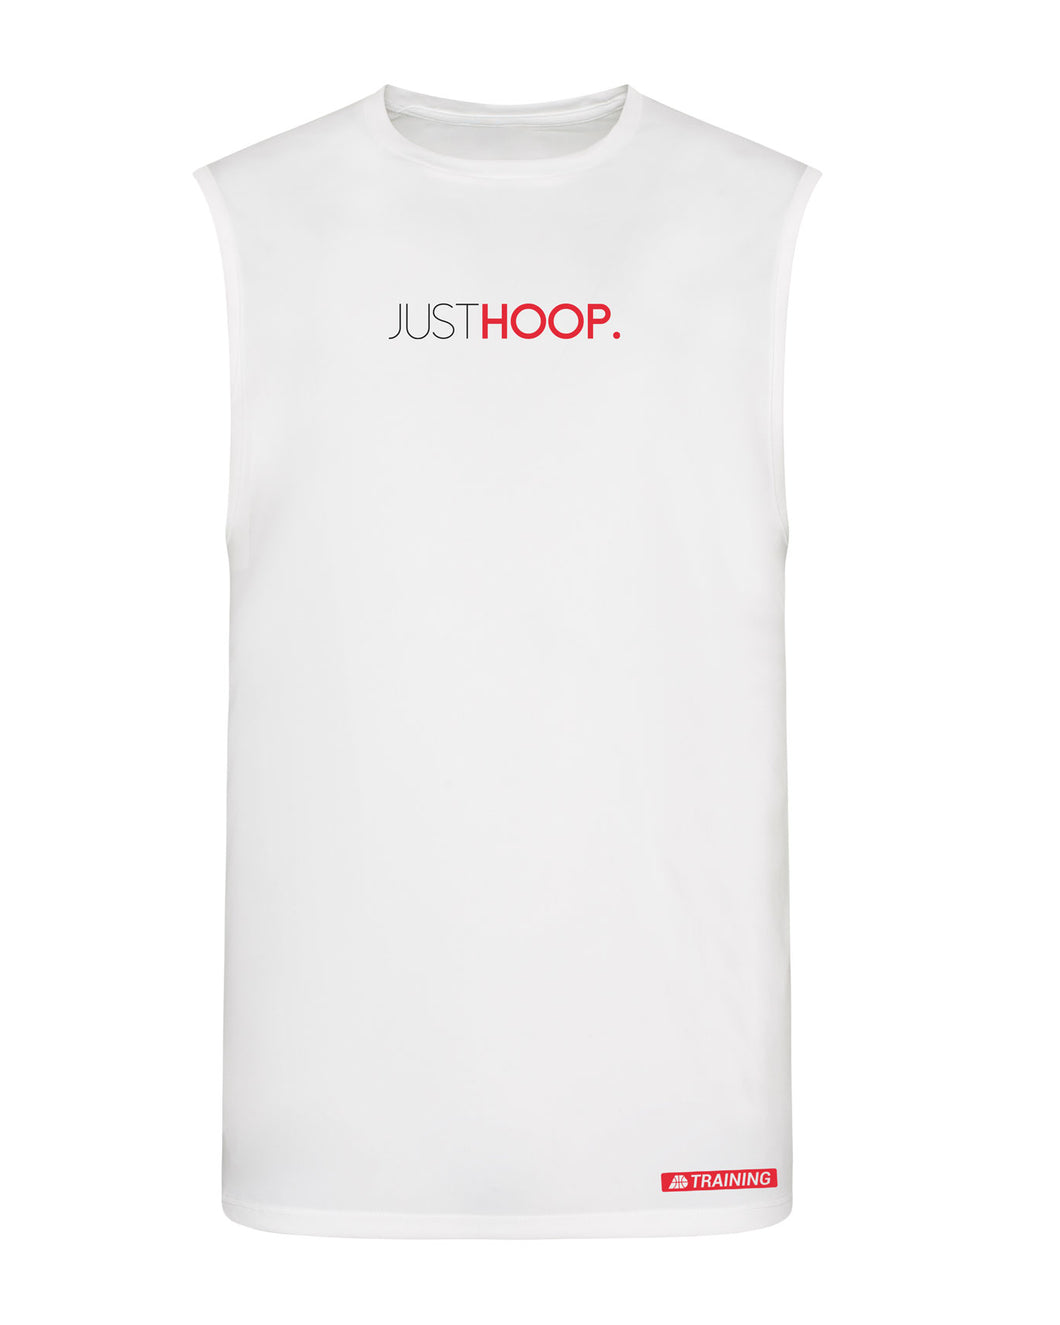 Just Hoop White Performance Vest